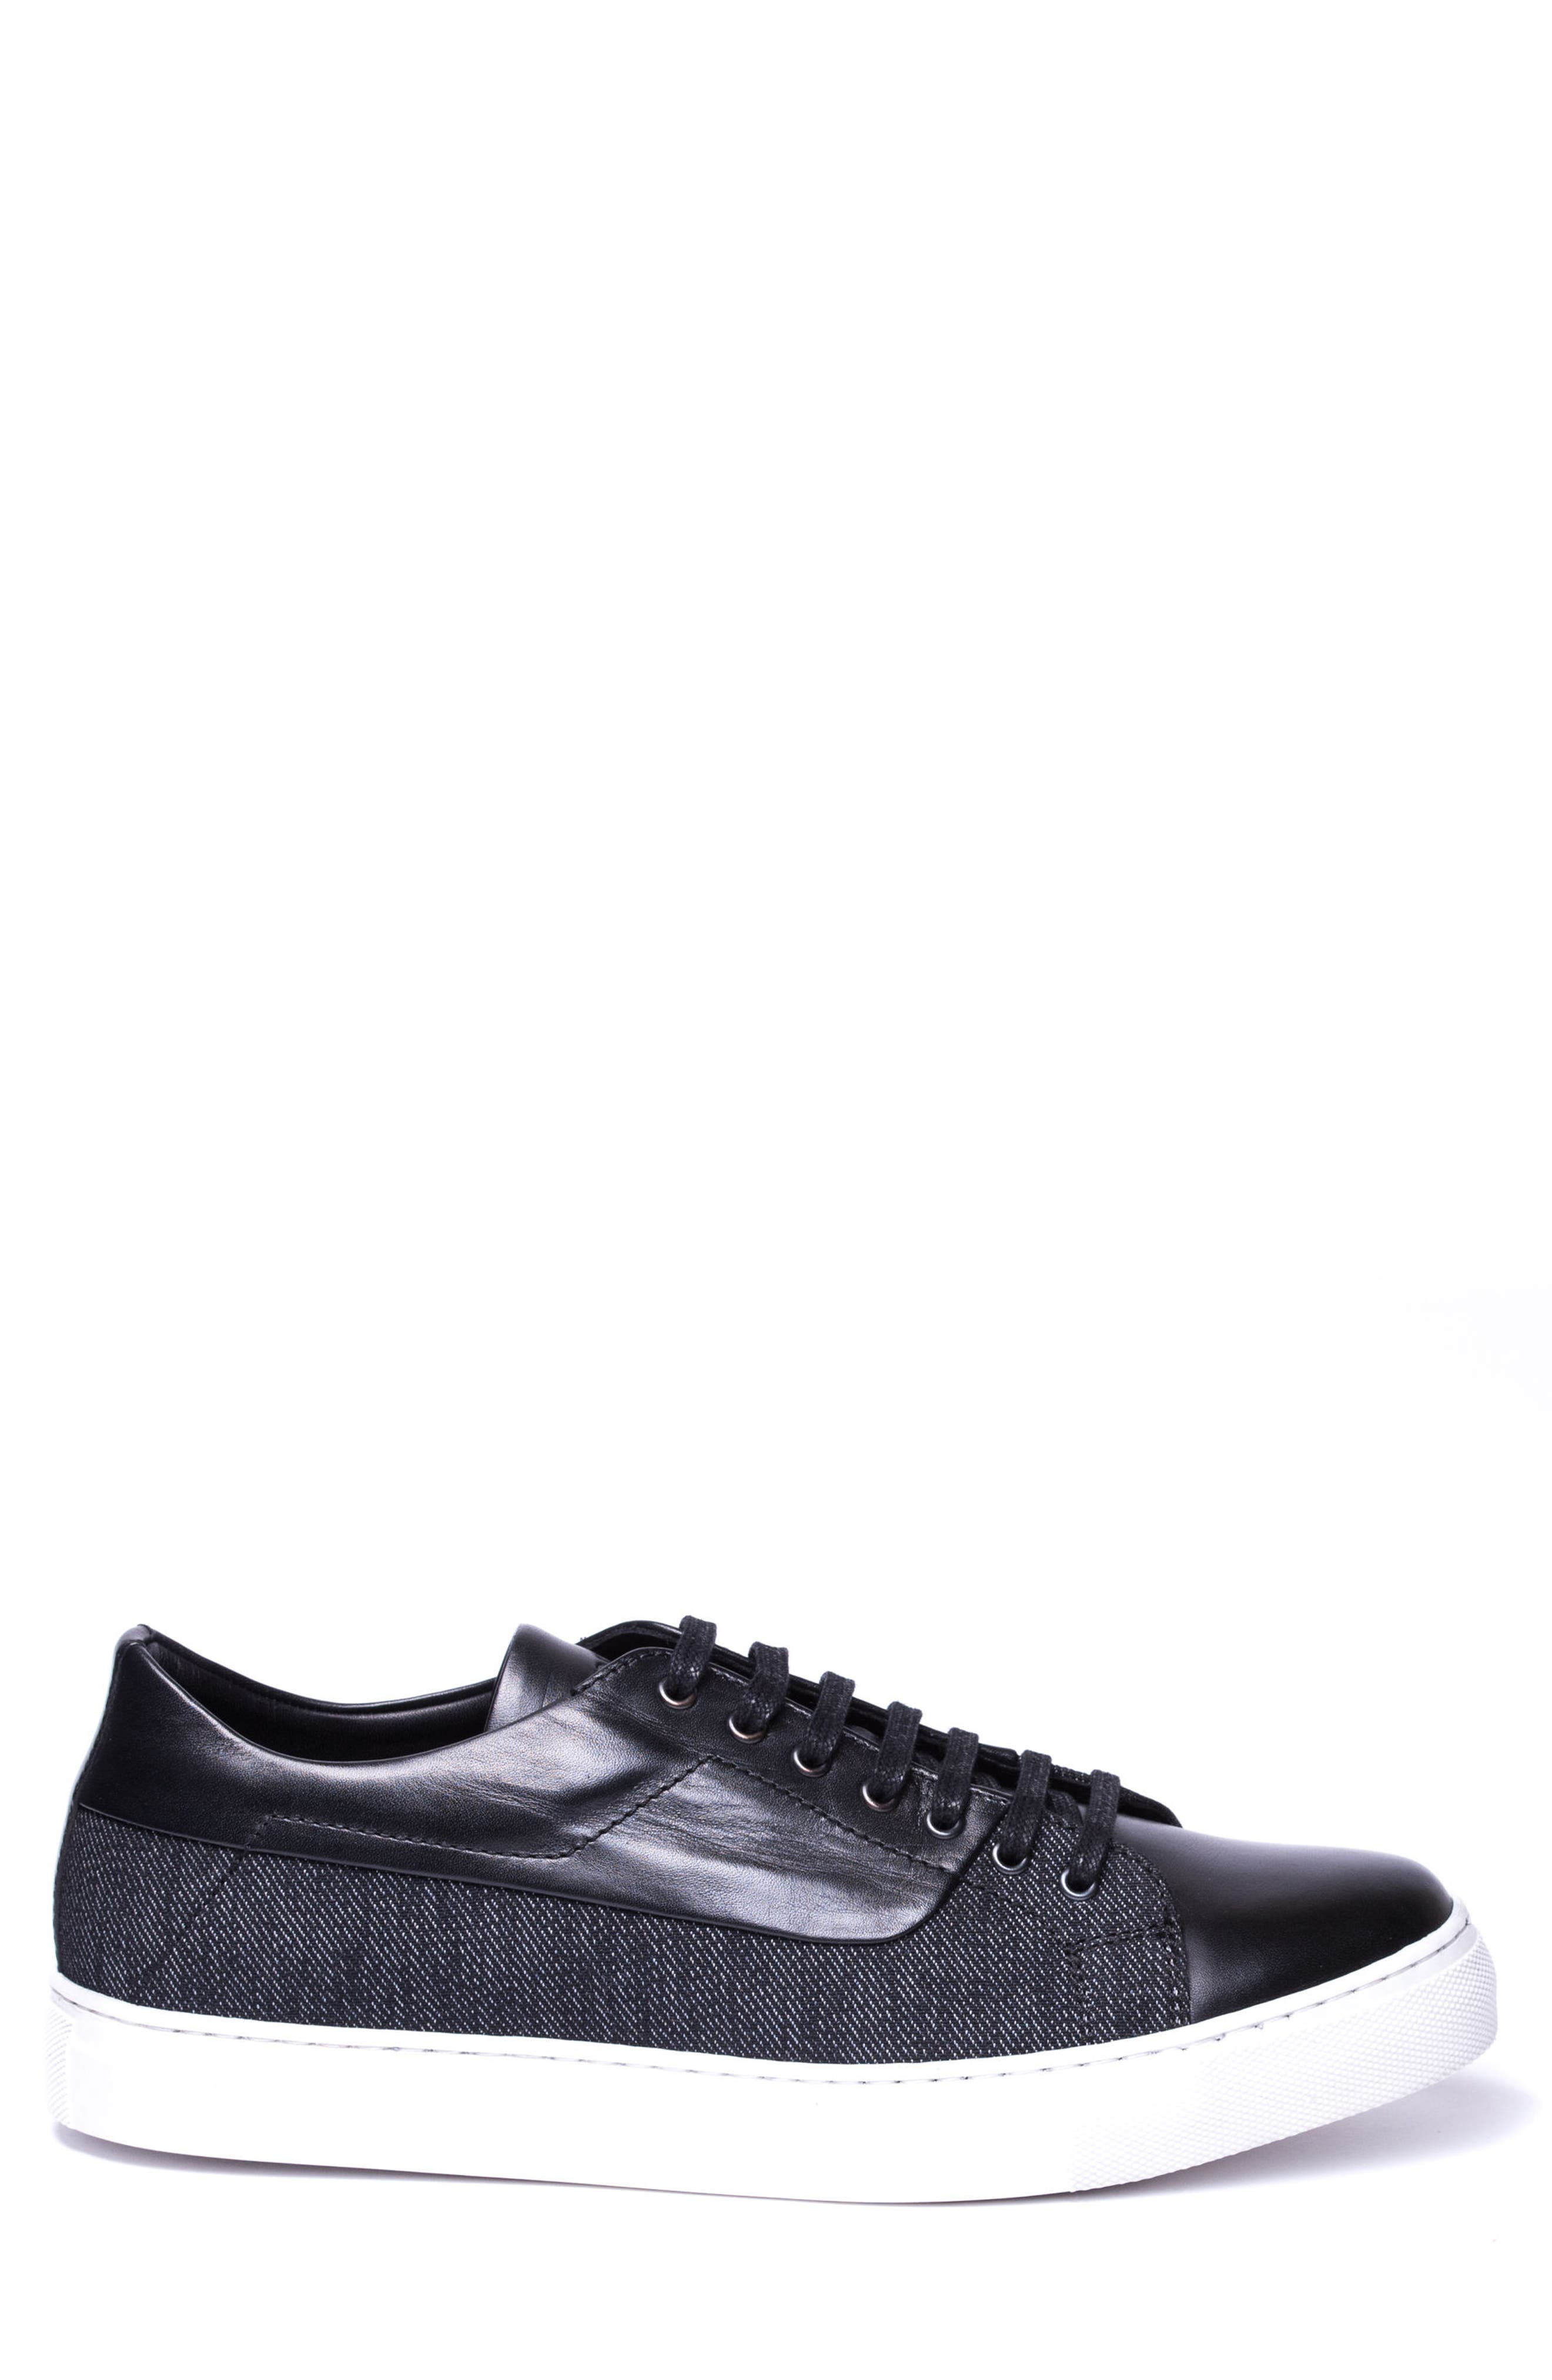 Luke Low Top Sneaker,                             Alternate thumbnail 3, color,                             BLACK LEATHER